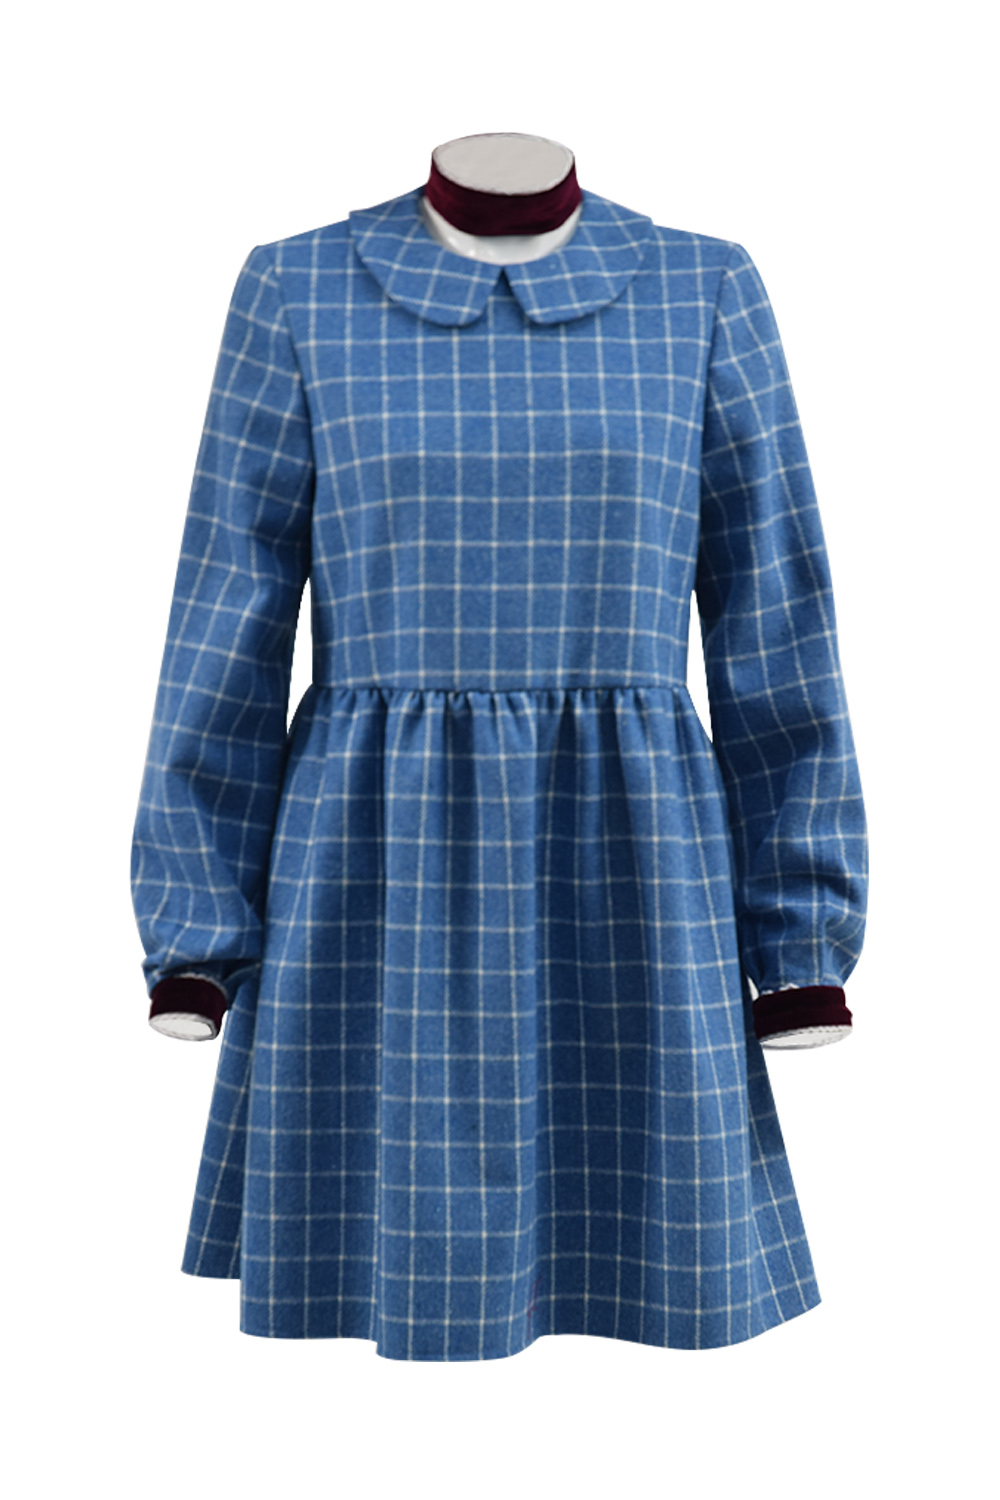 Cosdaddy Orphan Esther Cosplay Costume Women Girl Blue Grid Dress Halloween Party Horror Costume Full Set